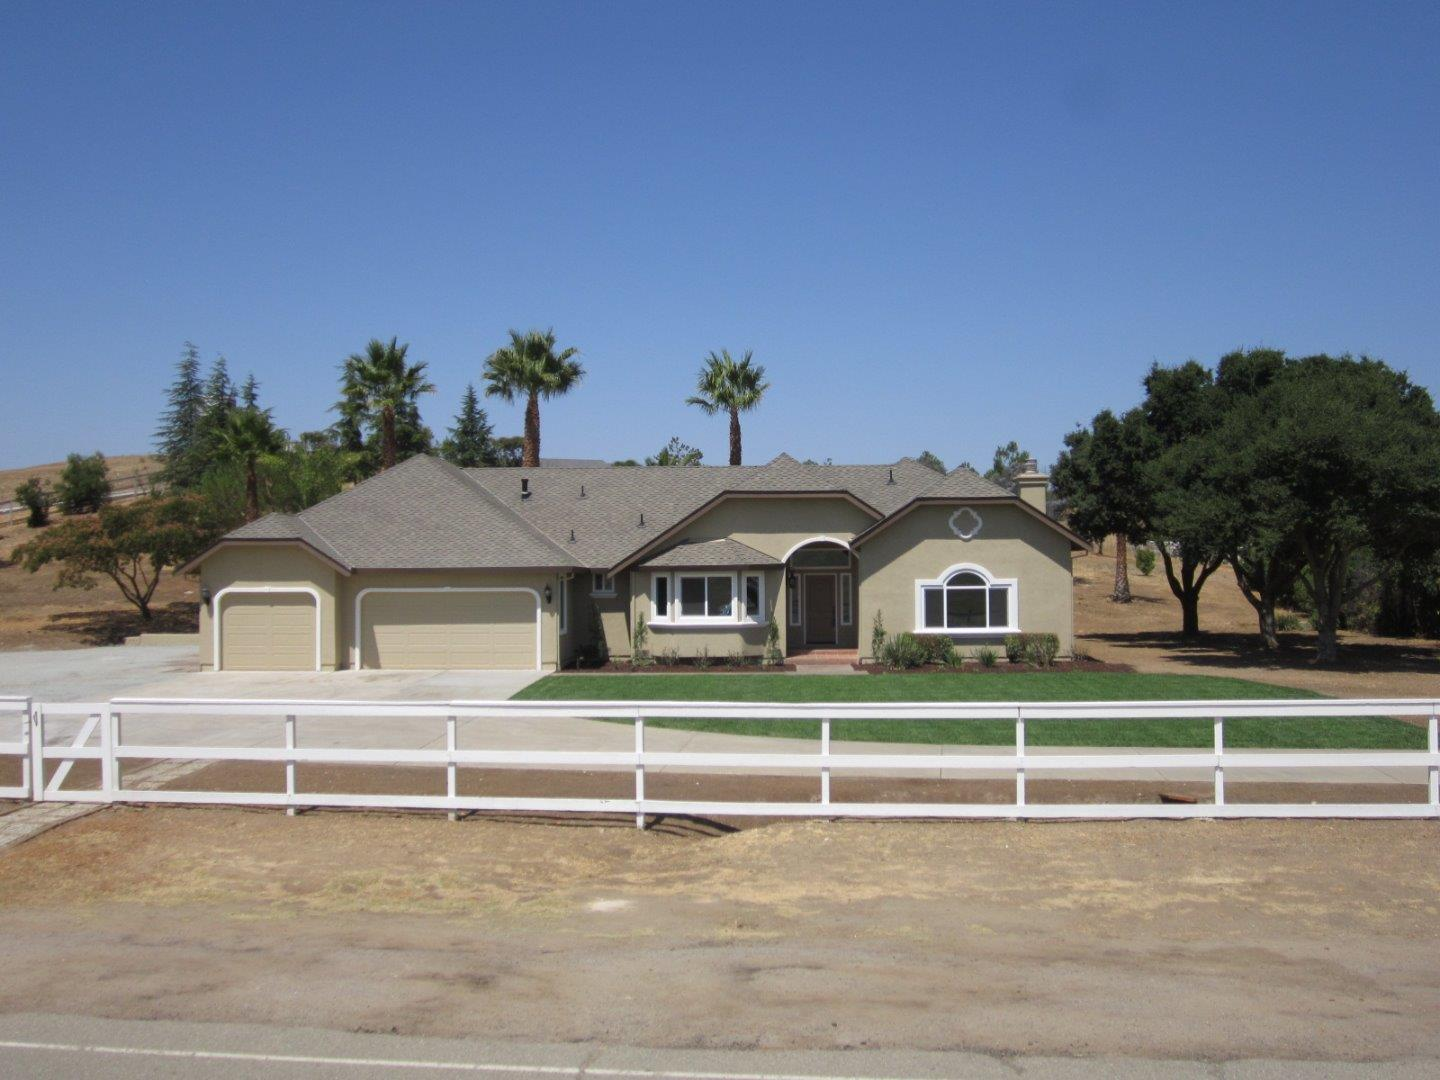 Single Family Home for Sale at 335 Quien Sabe Road Tres Pinos, California 95075 United States